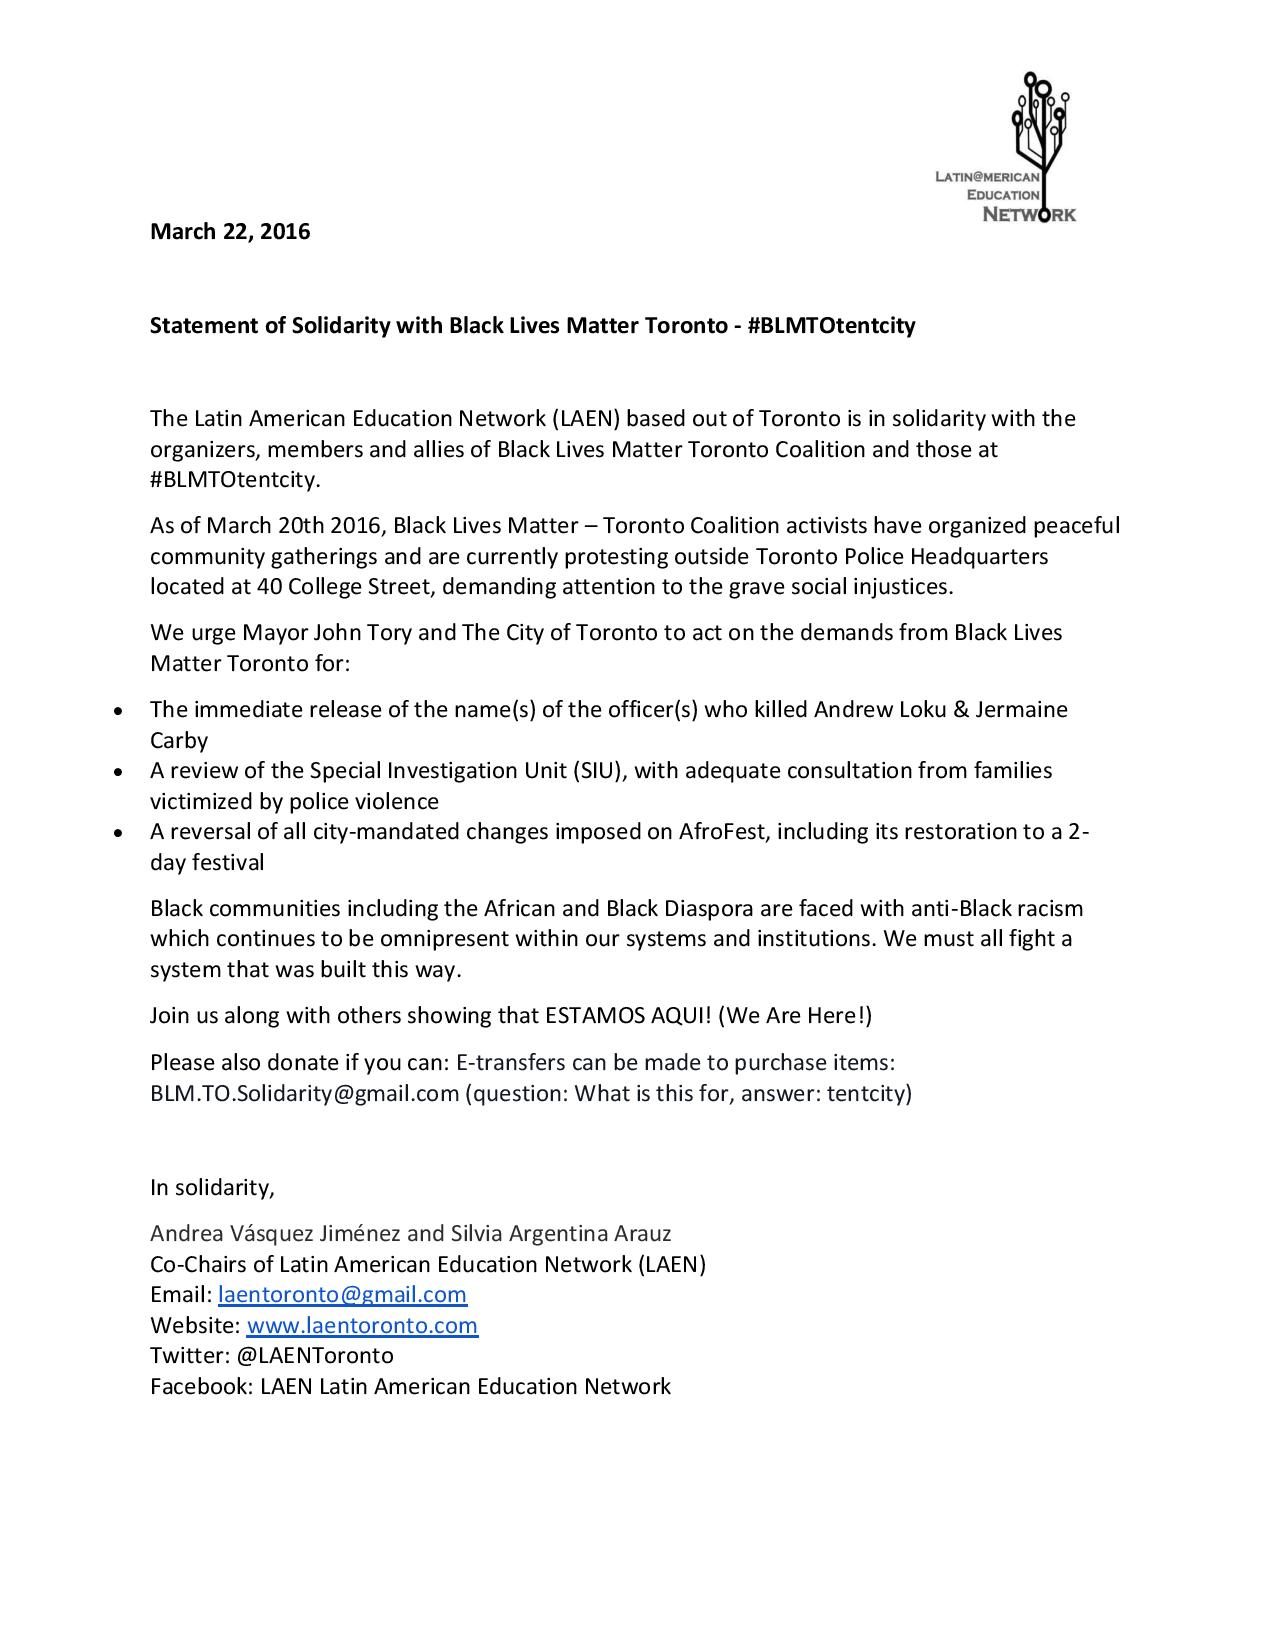 LAEN Statement of Solidarity with Black Lives Matter Toronto